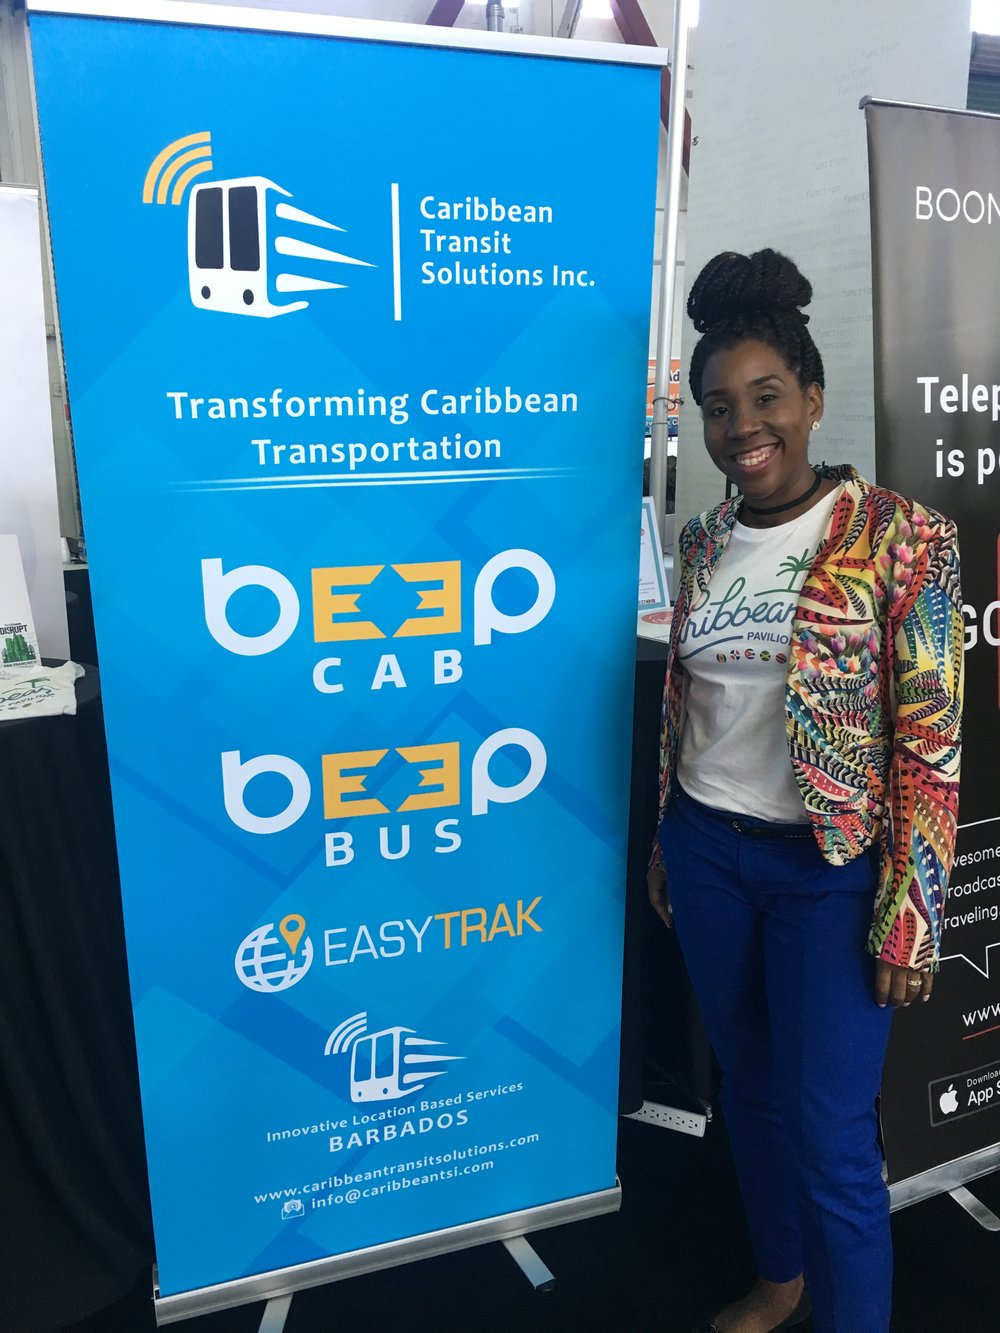 Veronica Millington, Head of Marketing at Caribbean Transit Solutions, shows off her company's banner.